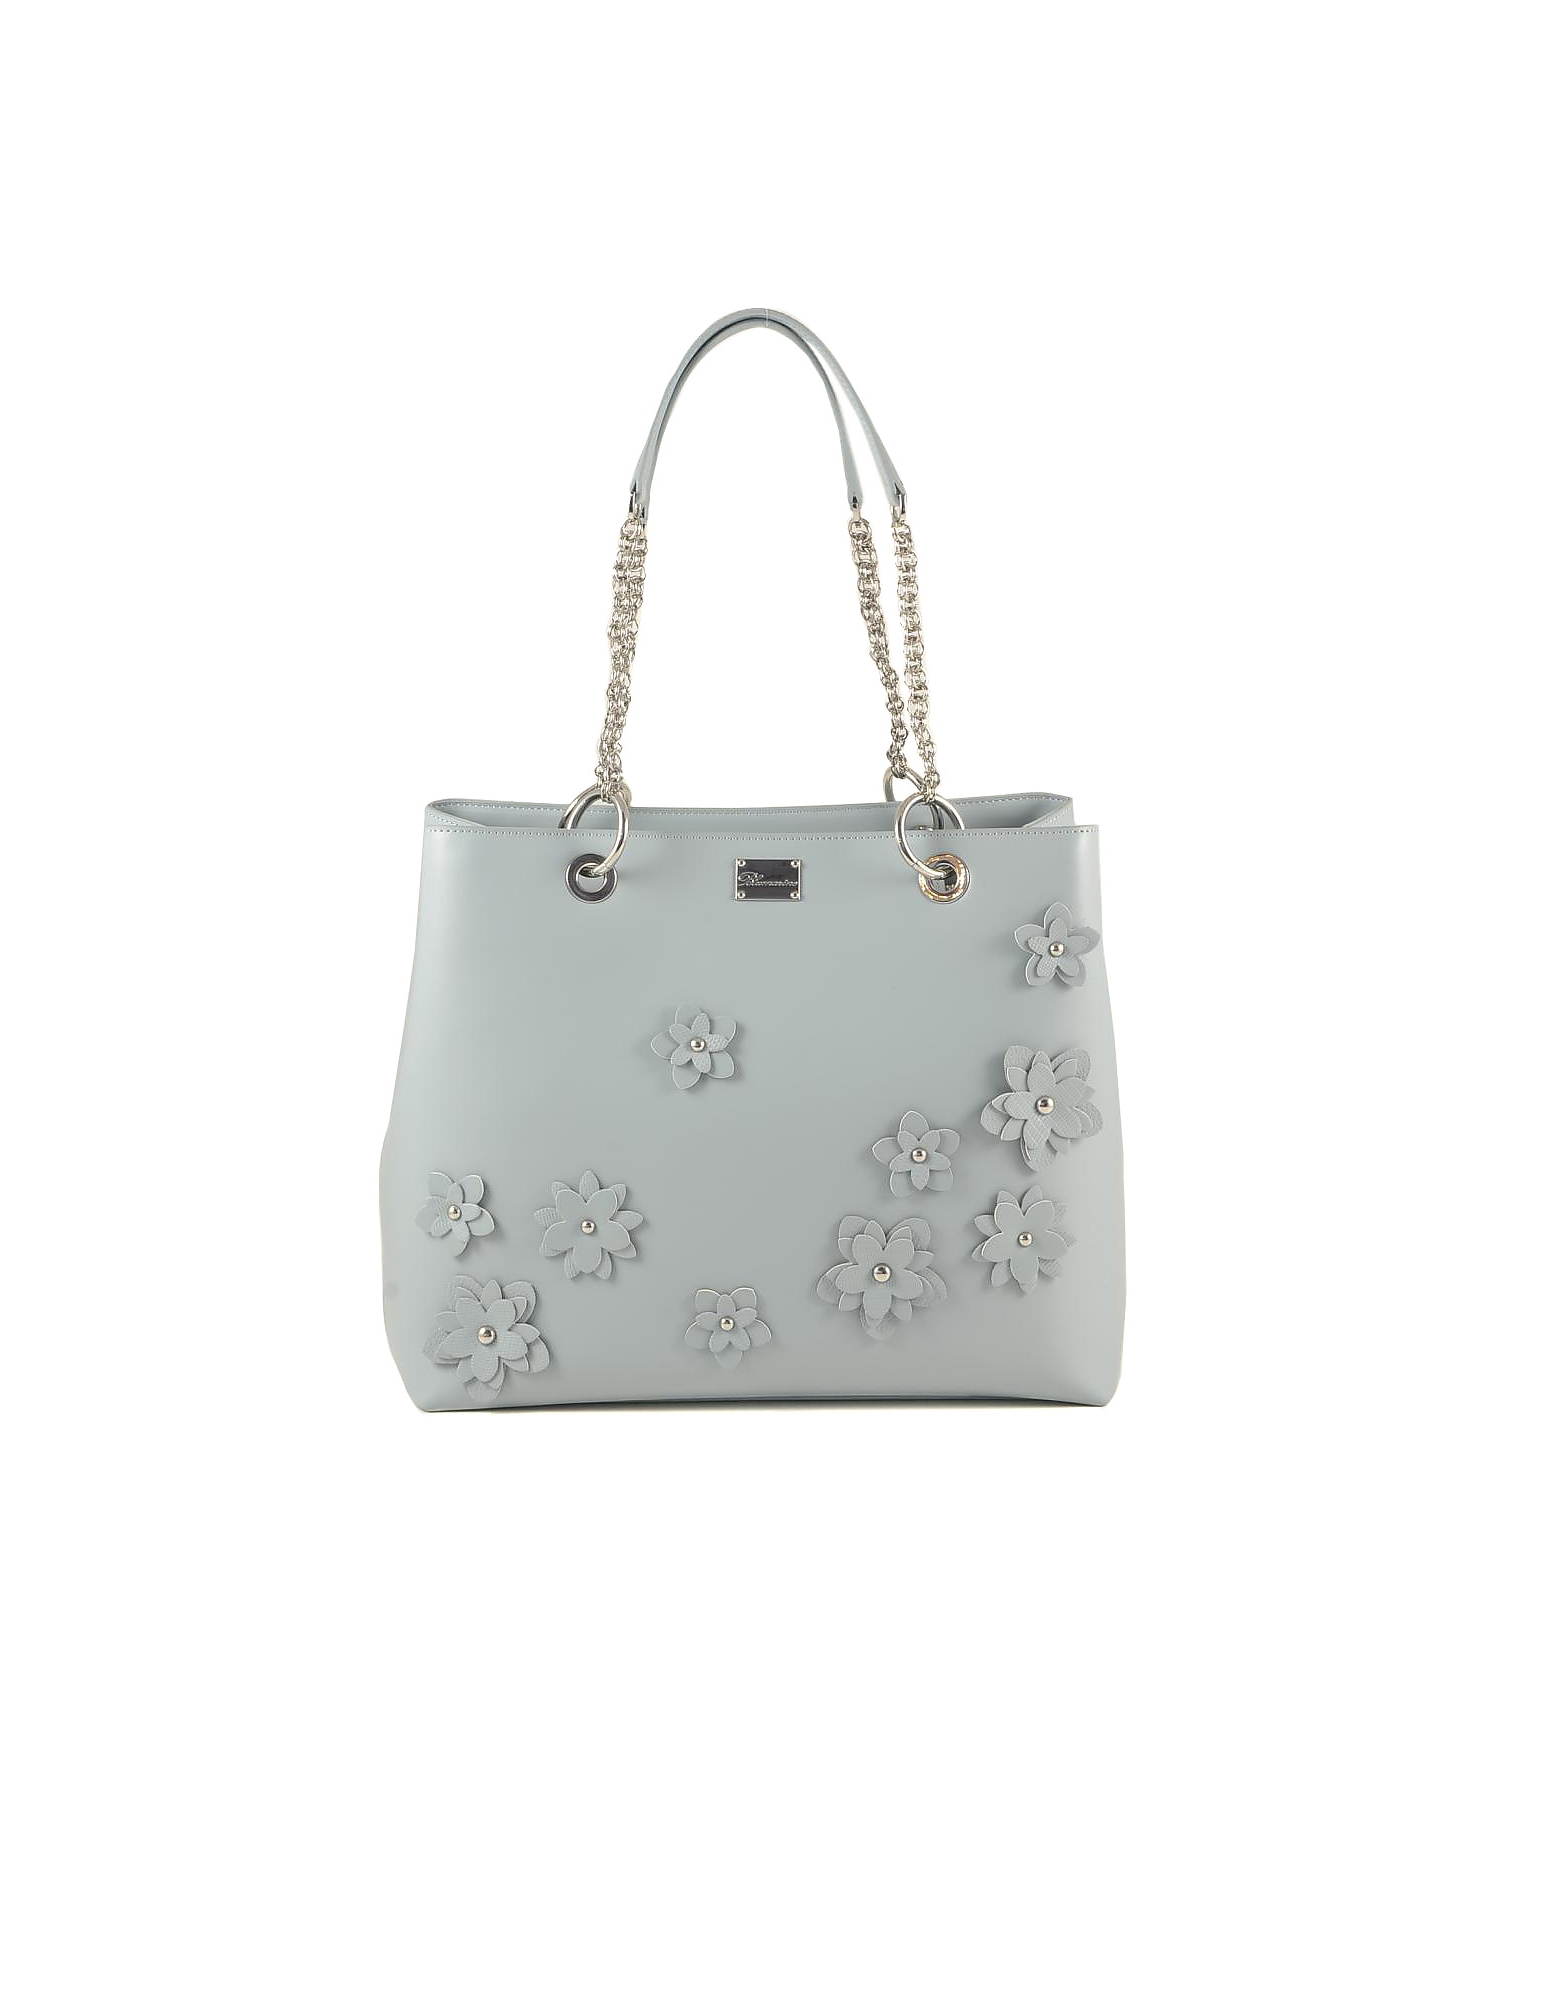 Blumarine Designer Handbags, Light Blue Flower Tote Bag w/Chains